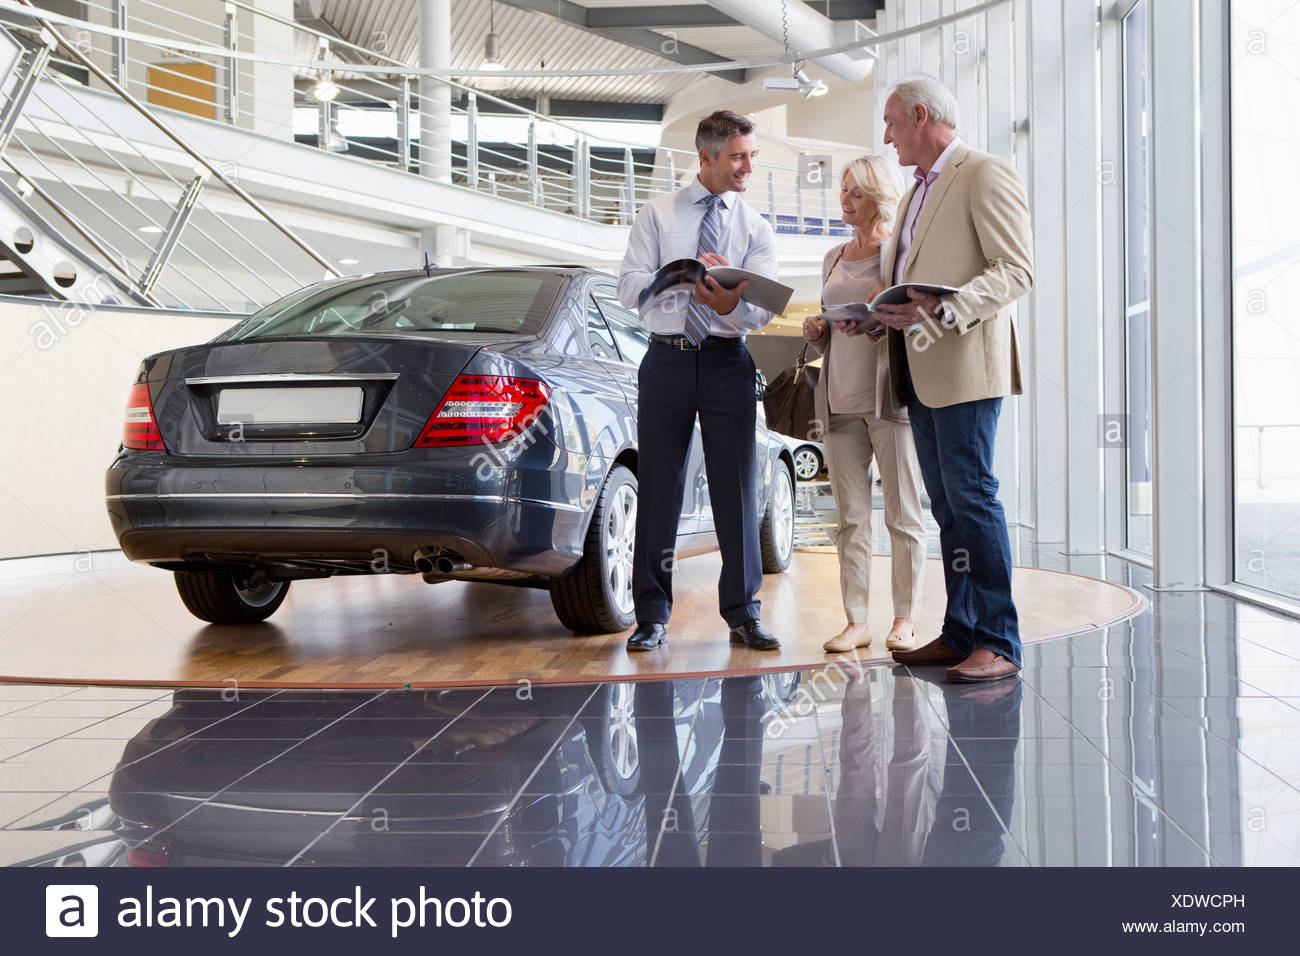 Salesman and couple with brochures next to car in car dealership showroom - Stock Image